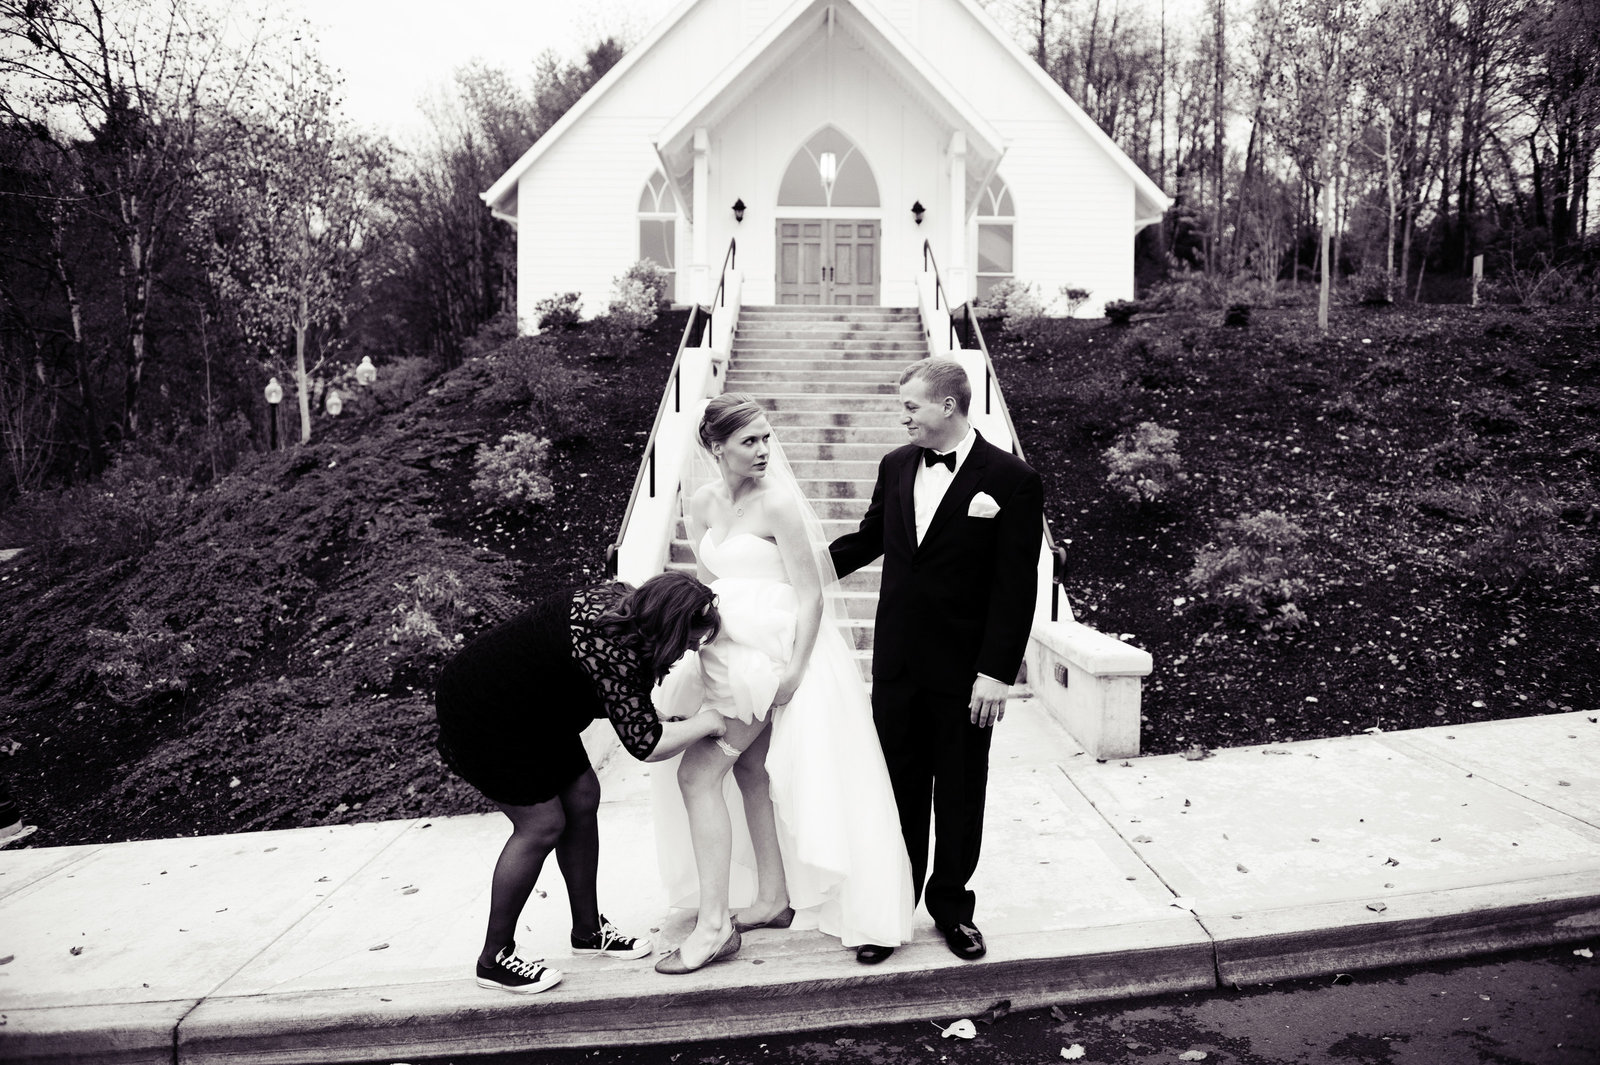 bridesmaid fixes garter in front of church as bride gives the groom a funny look